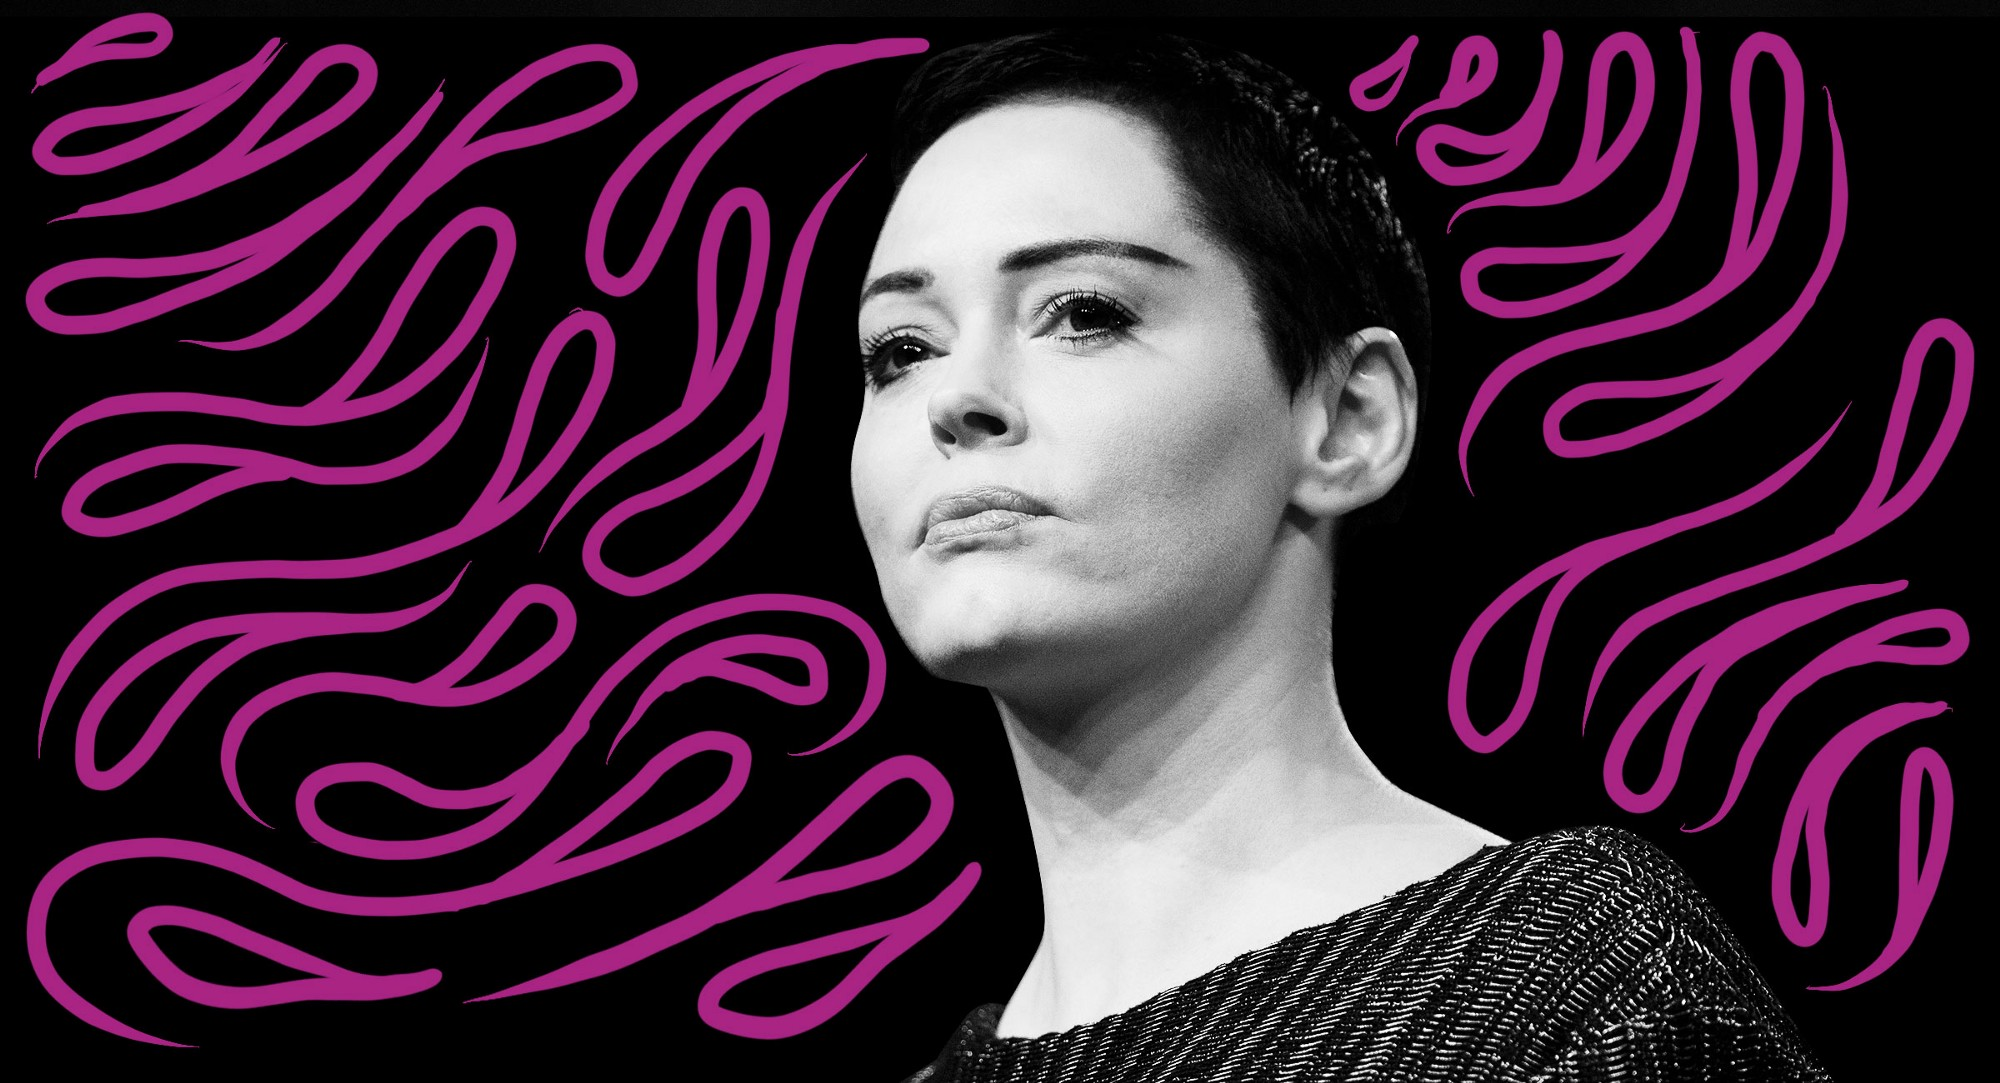 Rose McGowan forced to sell Hollywood Hills home to pay legal bills